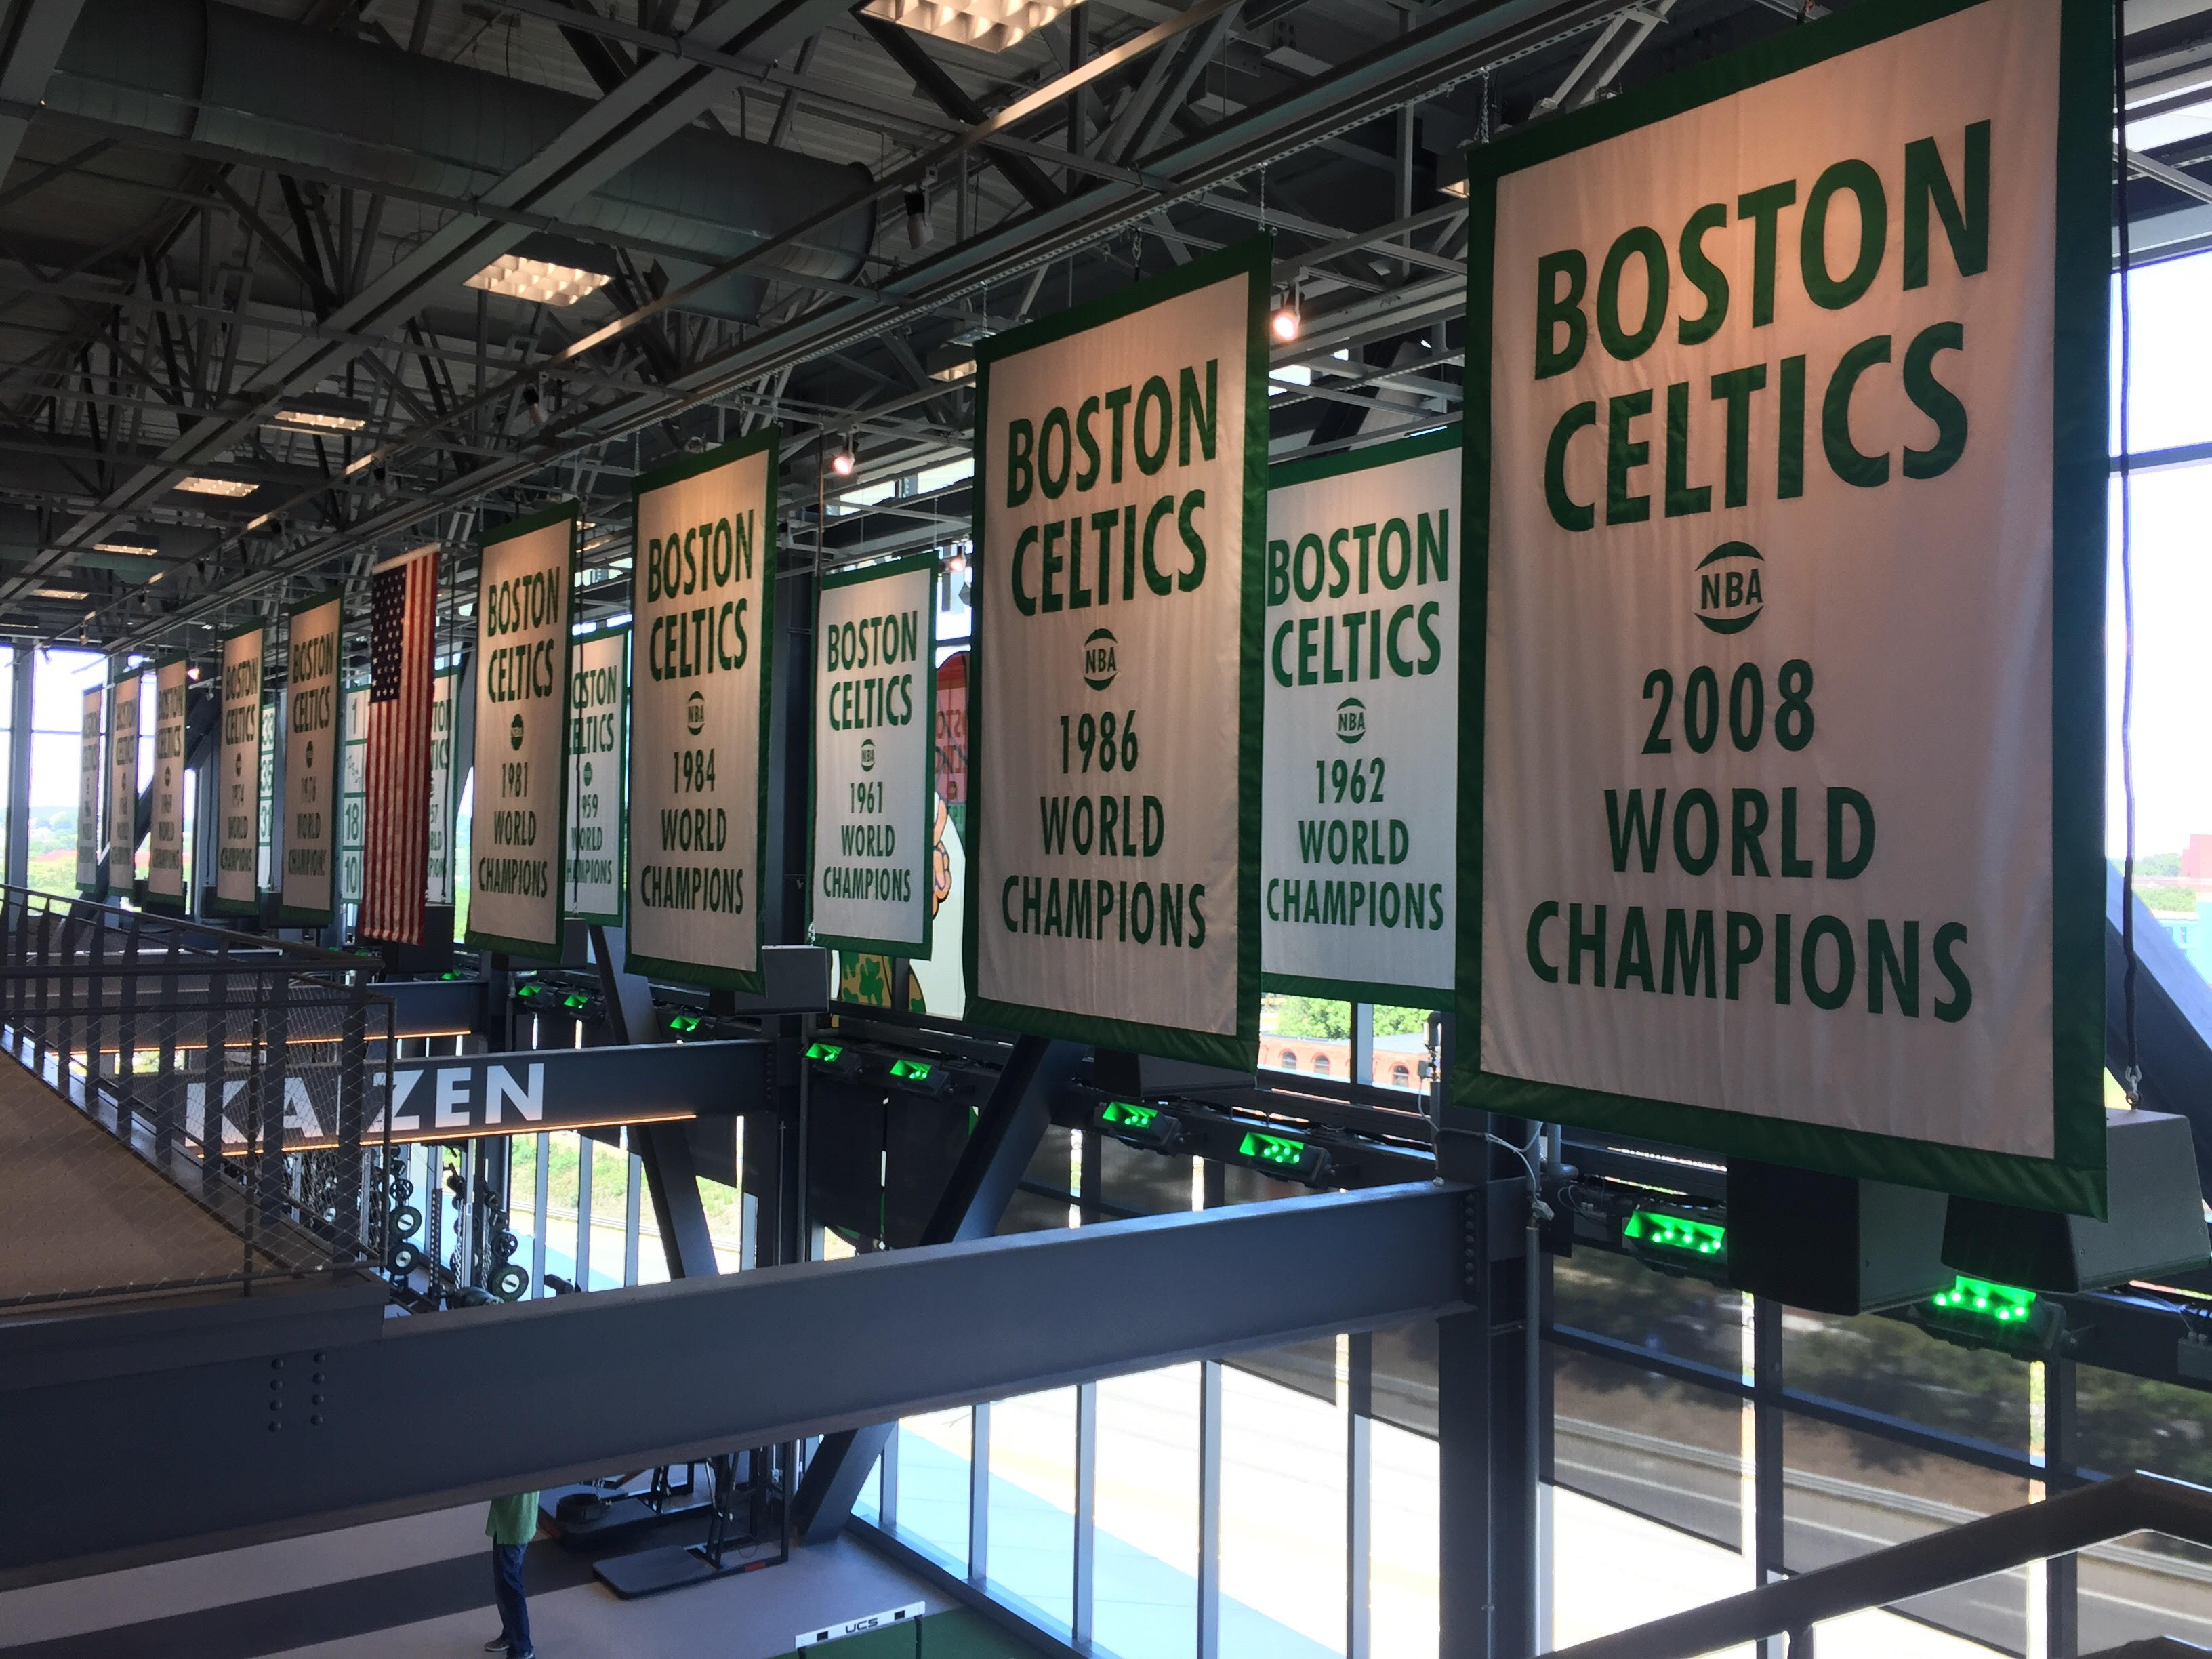 Your Morning Dump... Where the Celtics should remember the past...and repeat it.